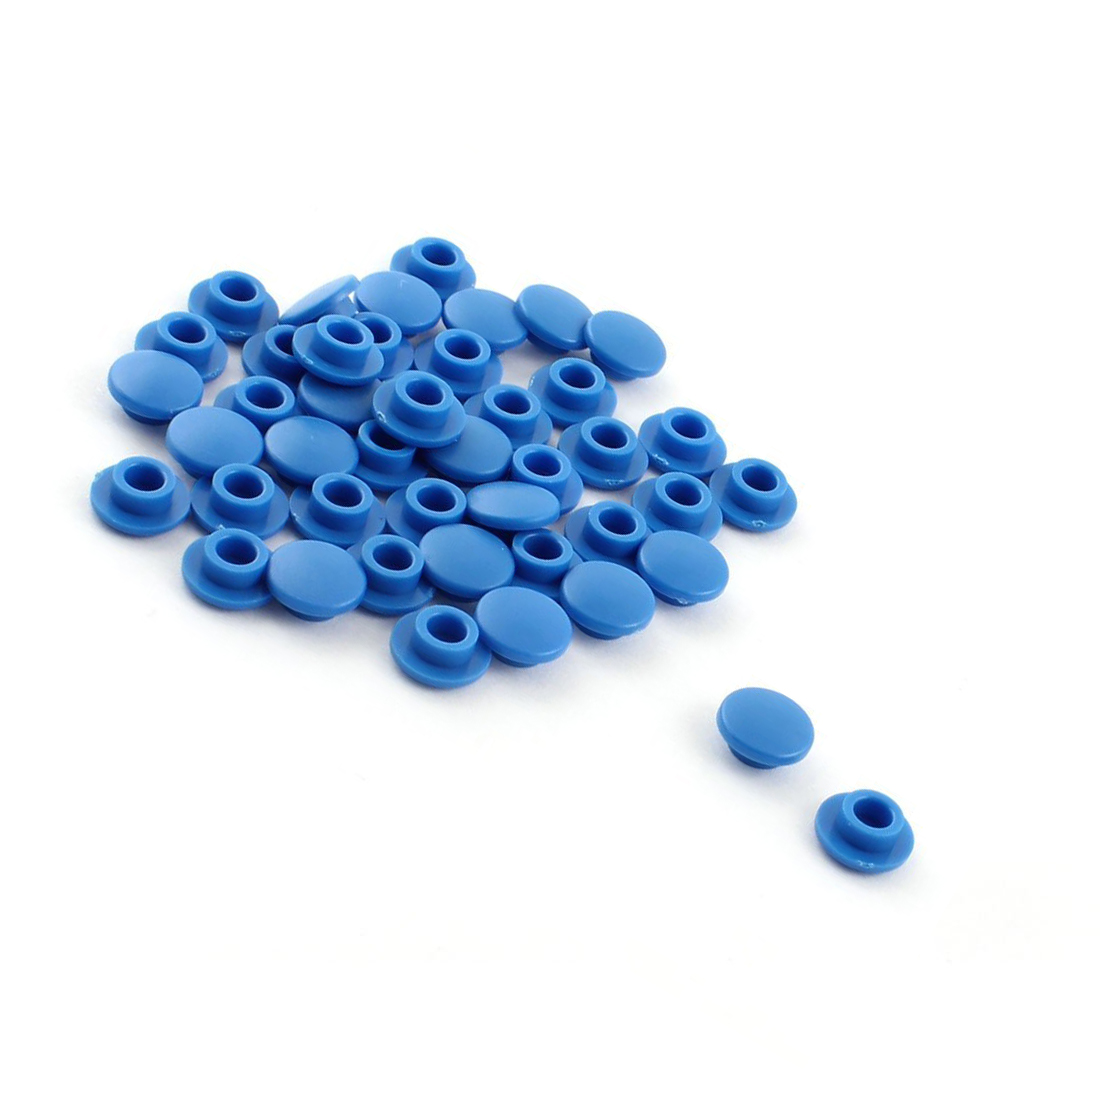 Jfbl Hot 45pcs Round Blue Mini Pushbutton Caps Covers For